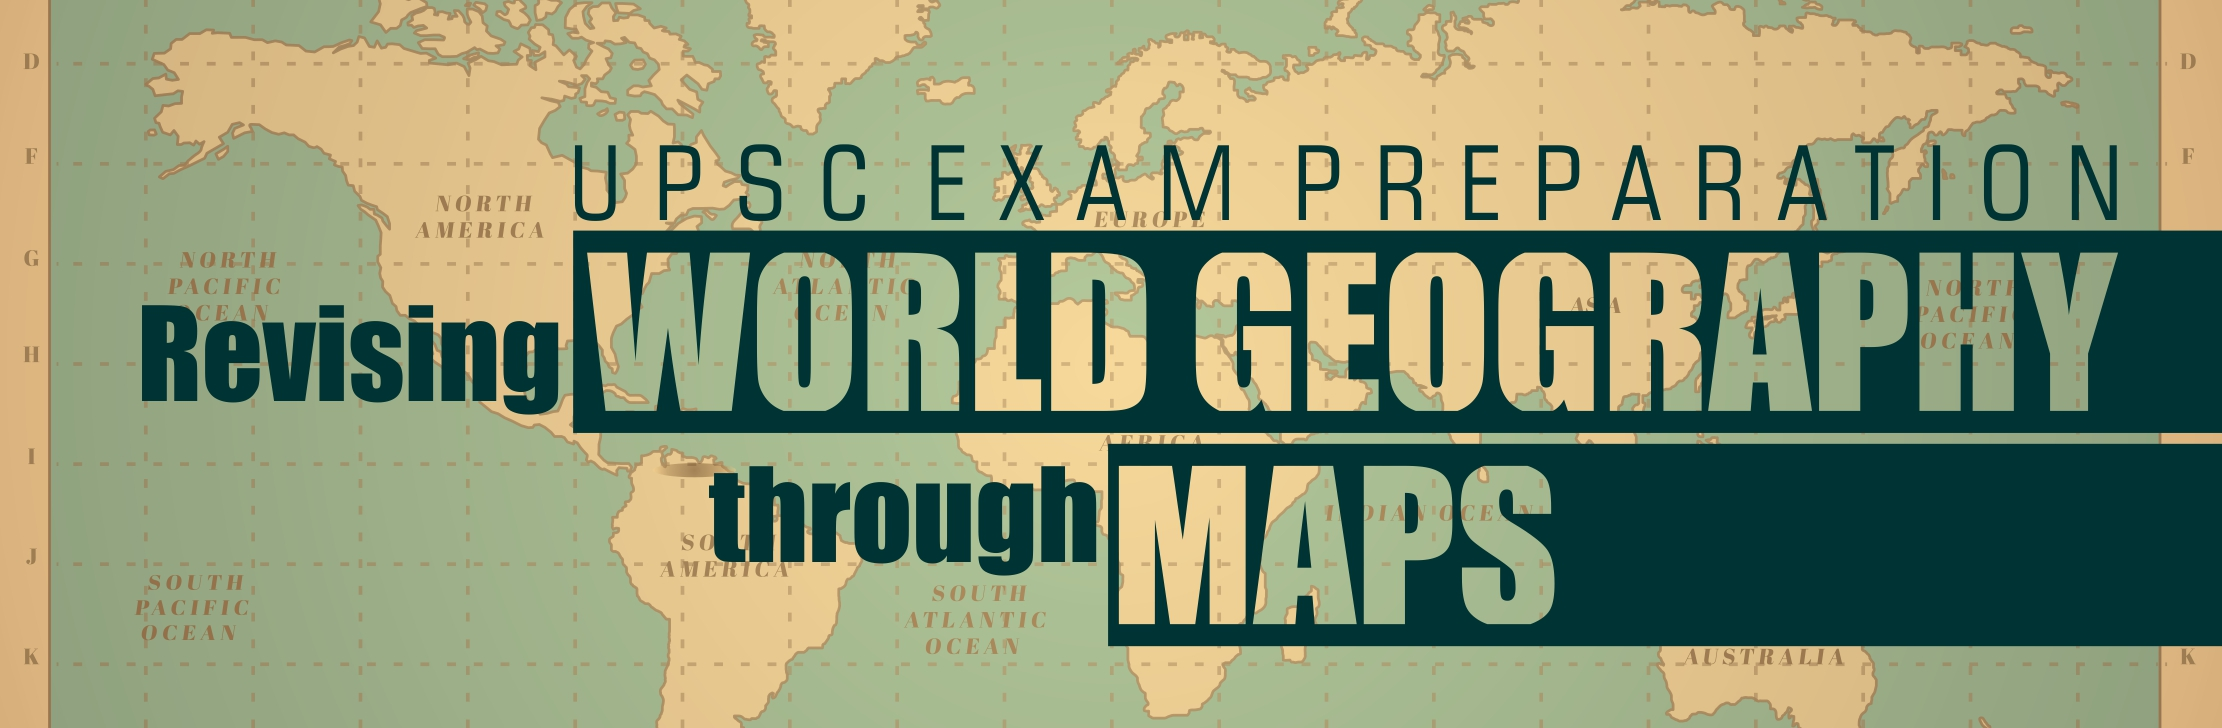 Upsc exam preparation revising world geography through maps upsc exam preparation revising world geography through maps gumiabroncs Gallery